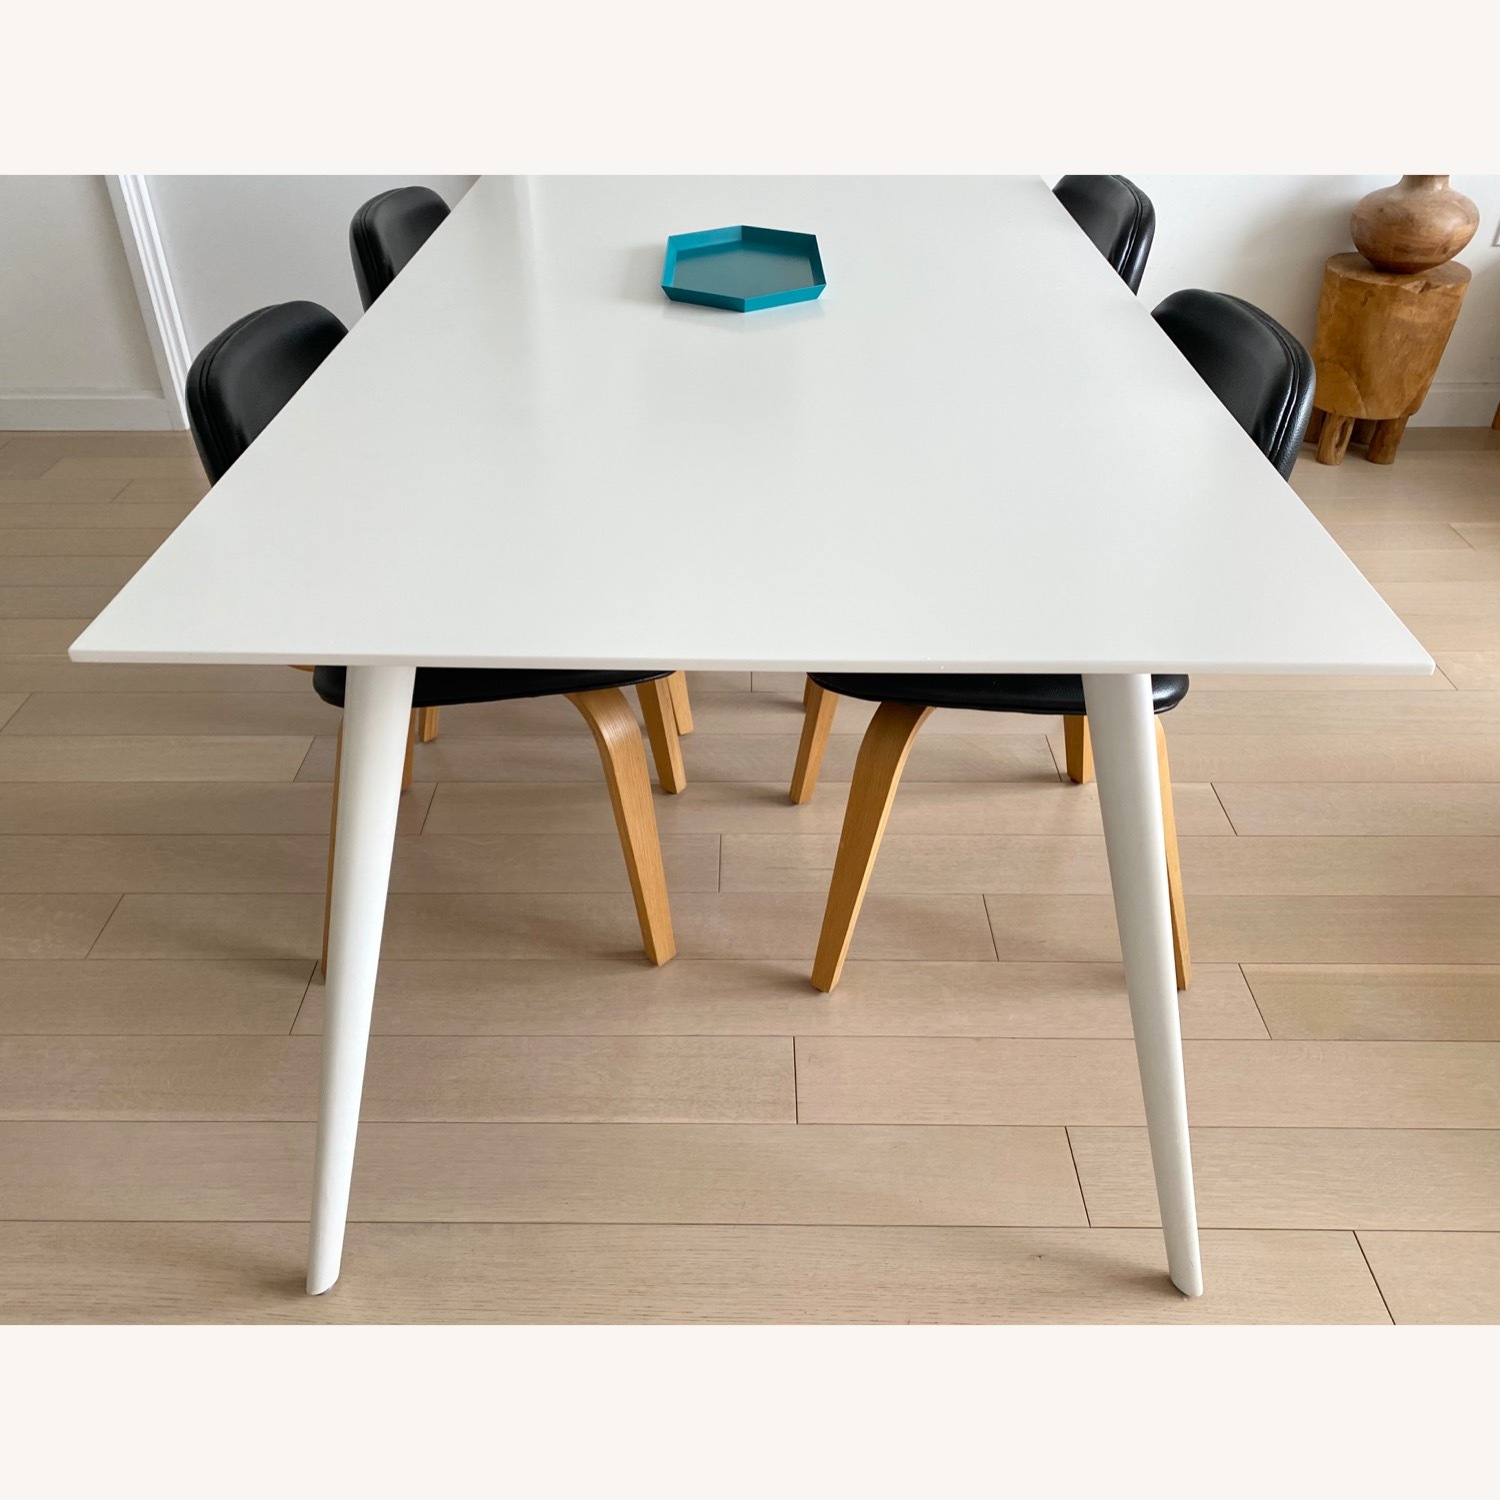 ABC Home White Modern Dining Table - image-7